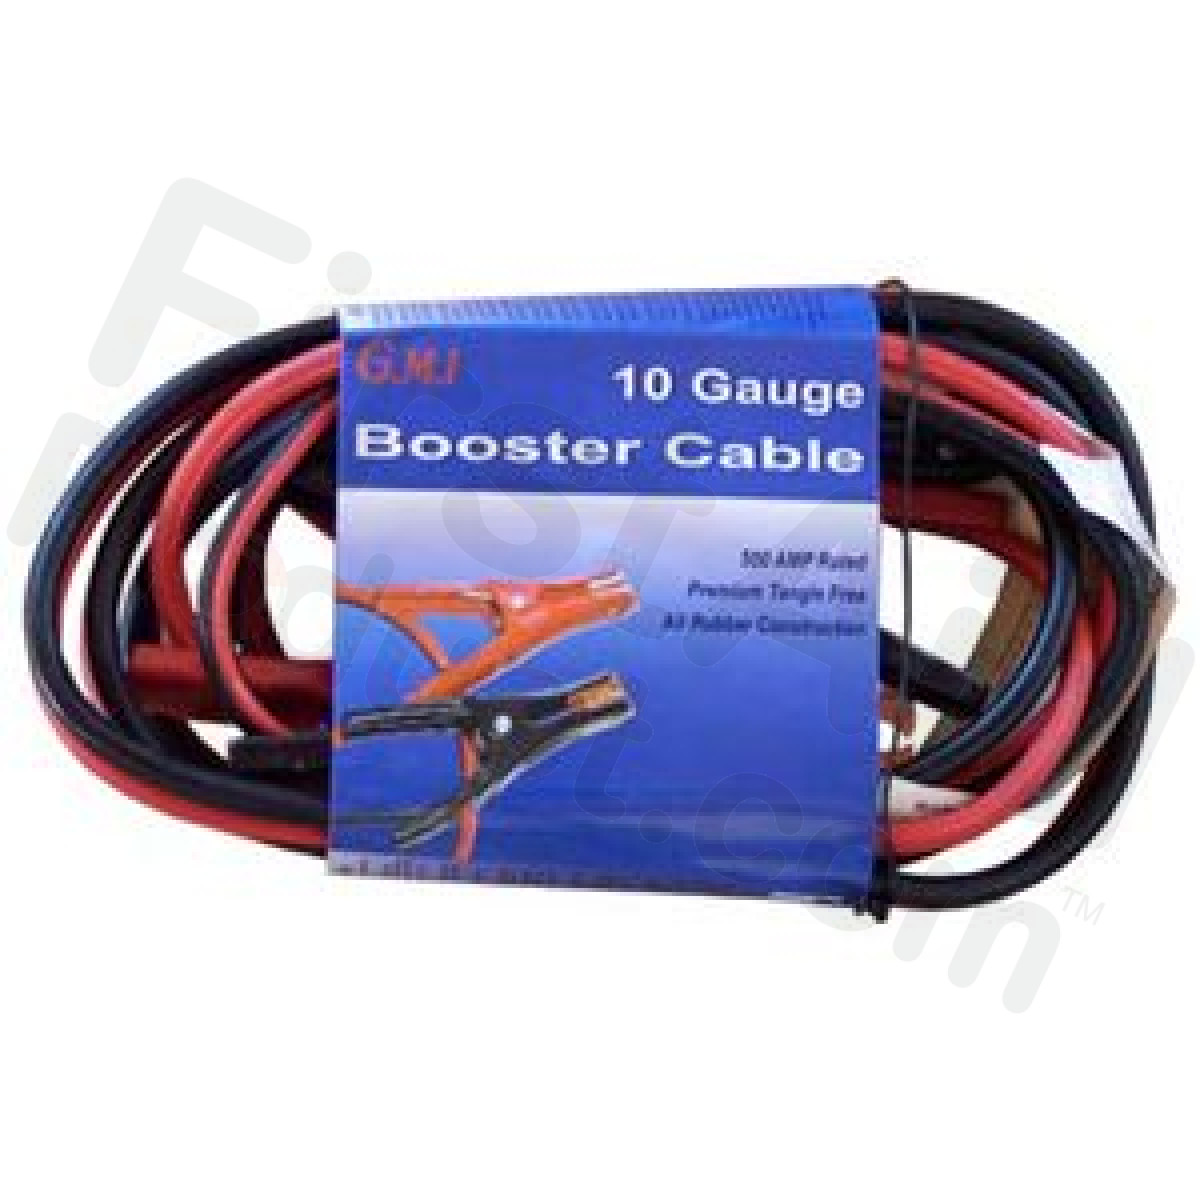 Battery Cables Product : First aid product battery jumper cables